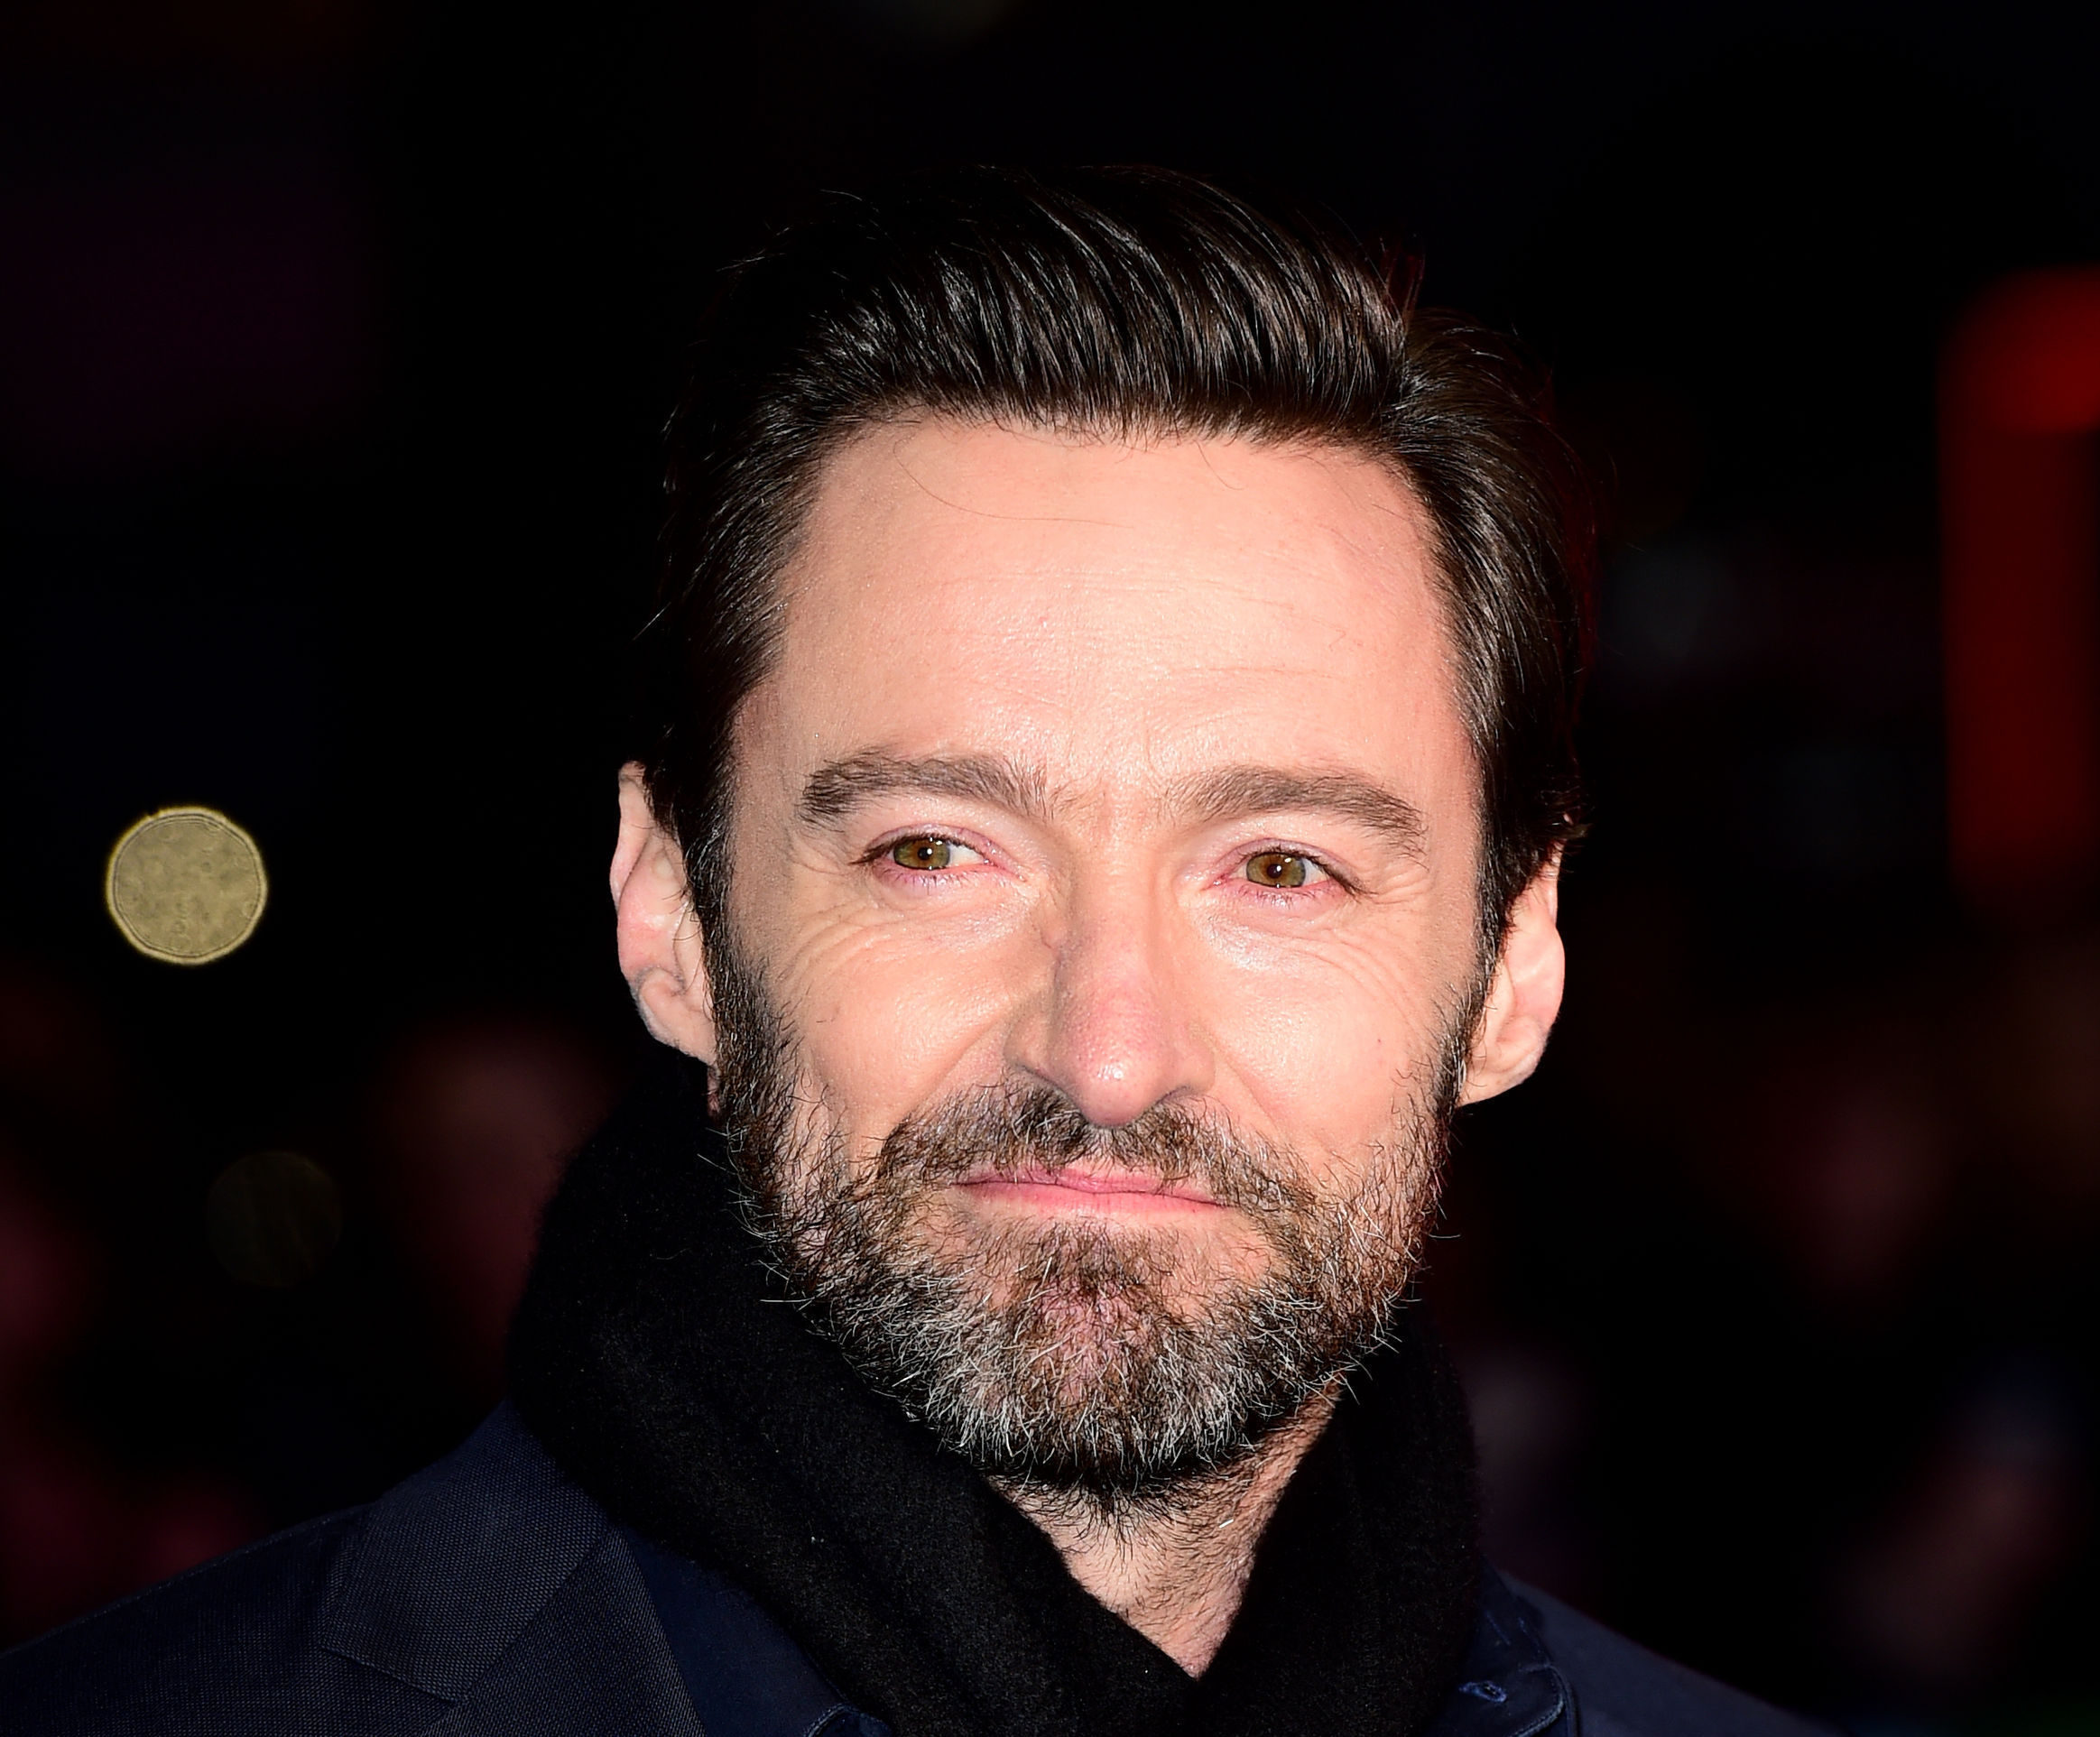 Hugh Jackman described the Inverness pupils as 'awesome and unique' (Ian West/PA)